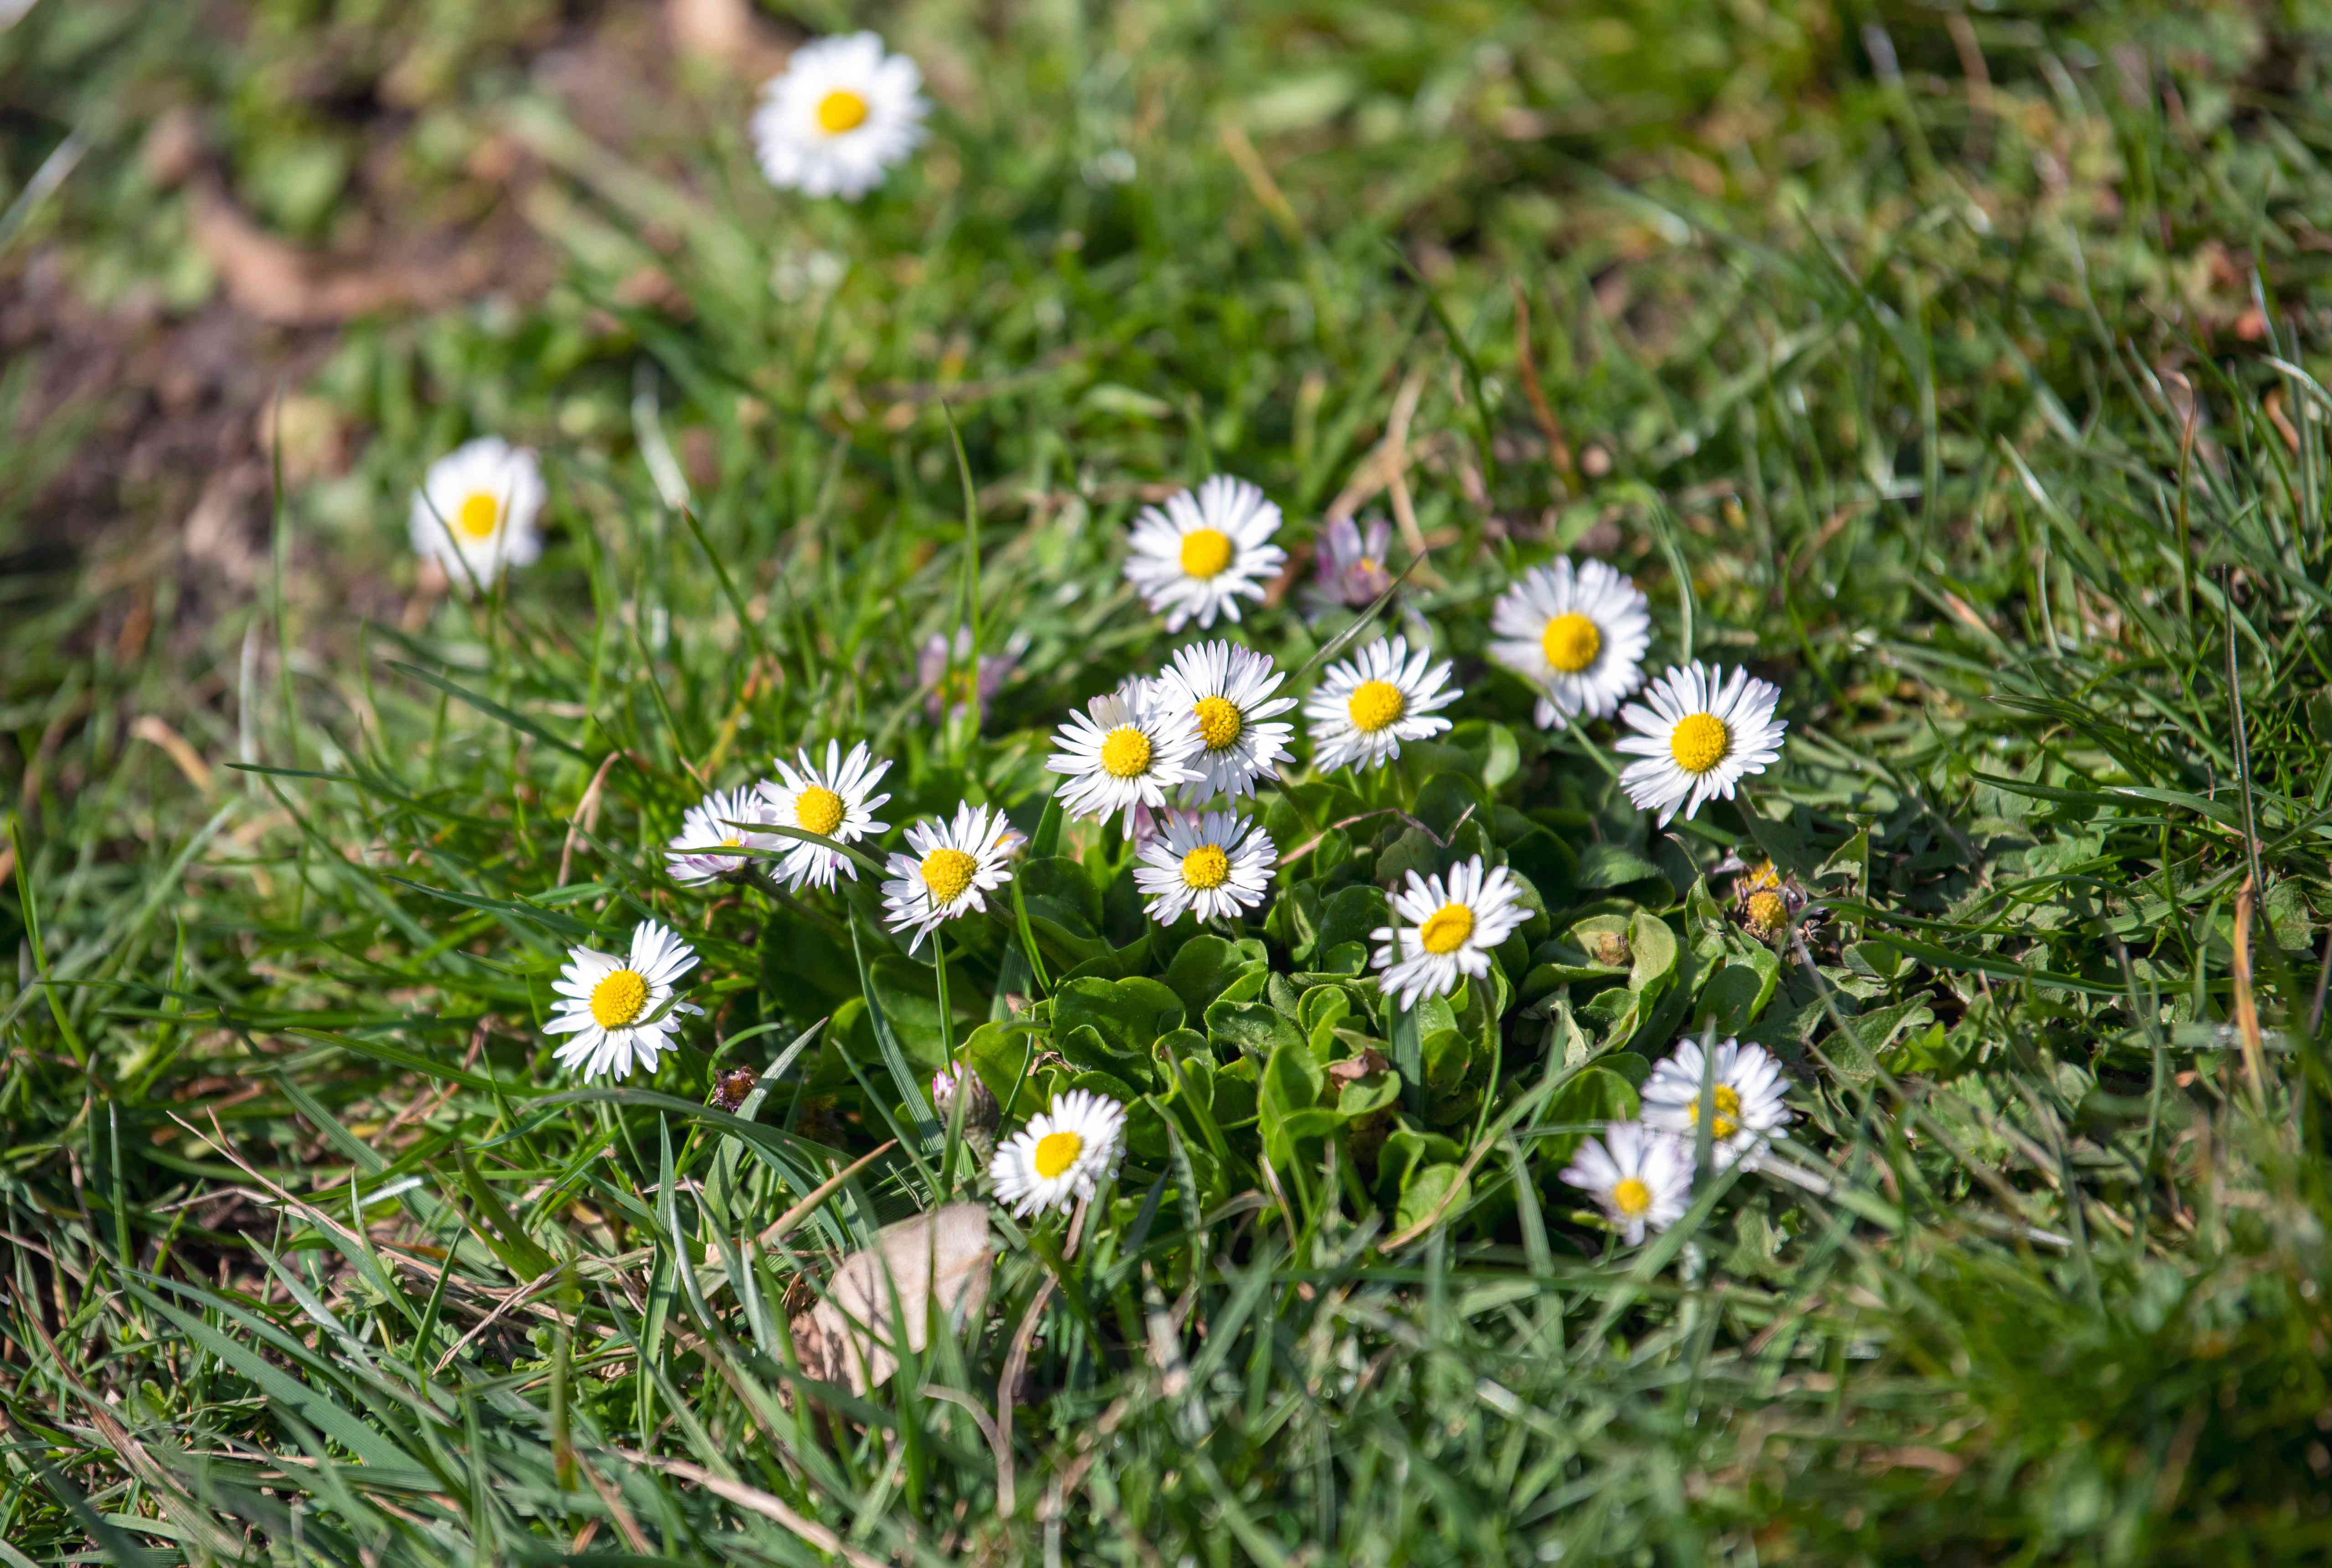 English daisy flowers clustered in grass under sunlight